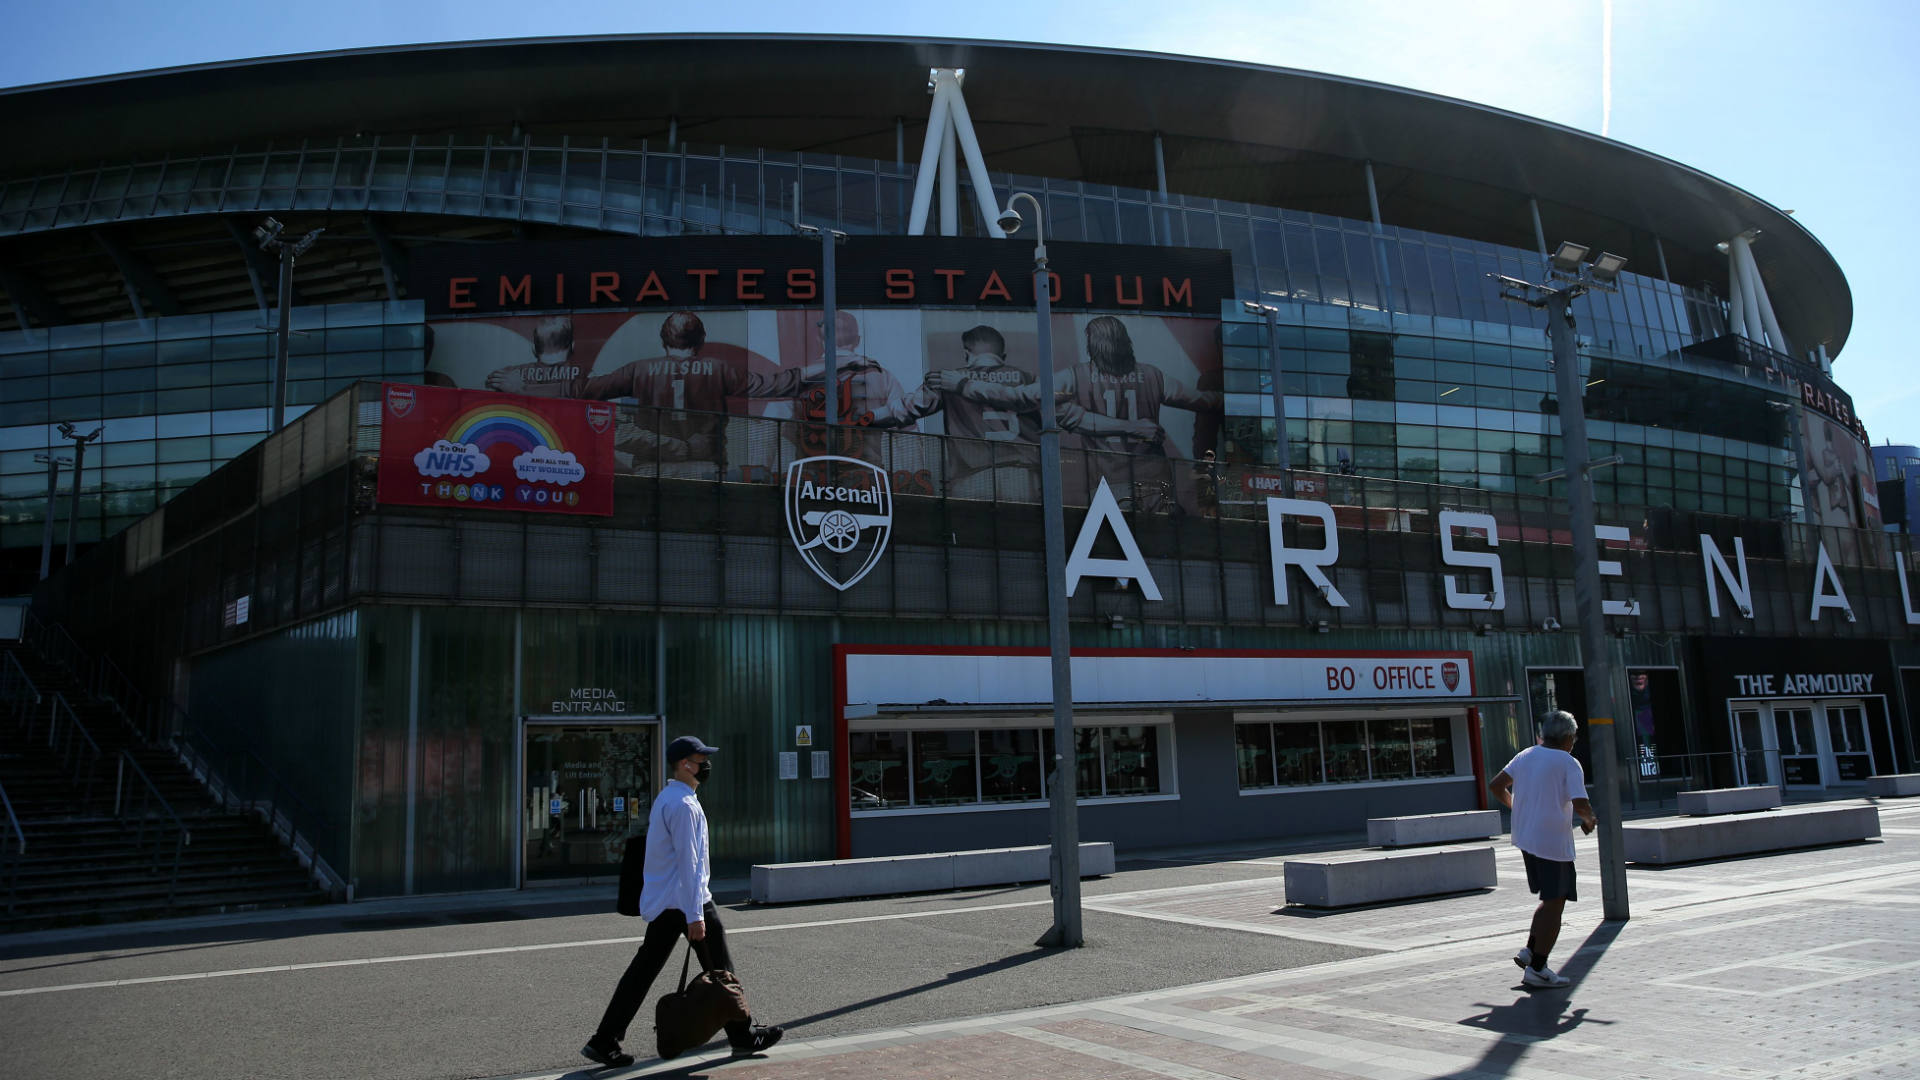 Premier League schedule updates: What to know about rumored plans, resumption dates for 2019-20 season